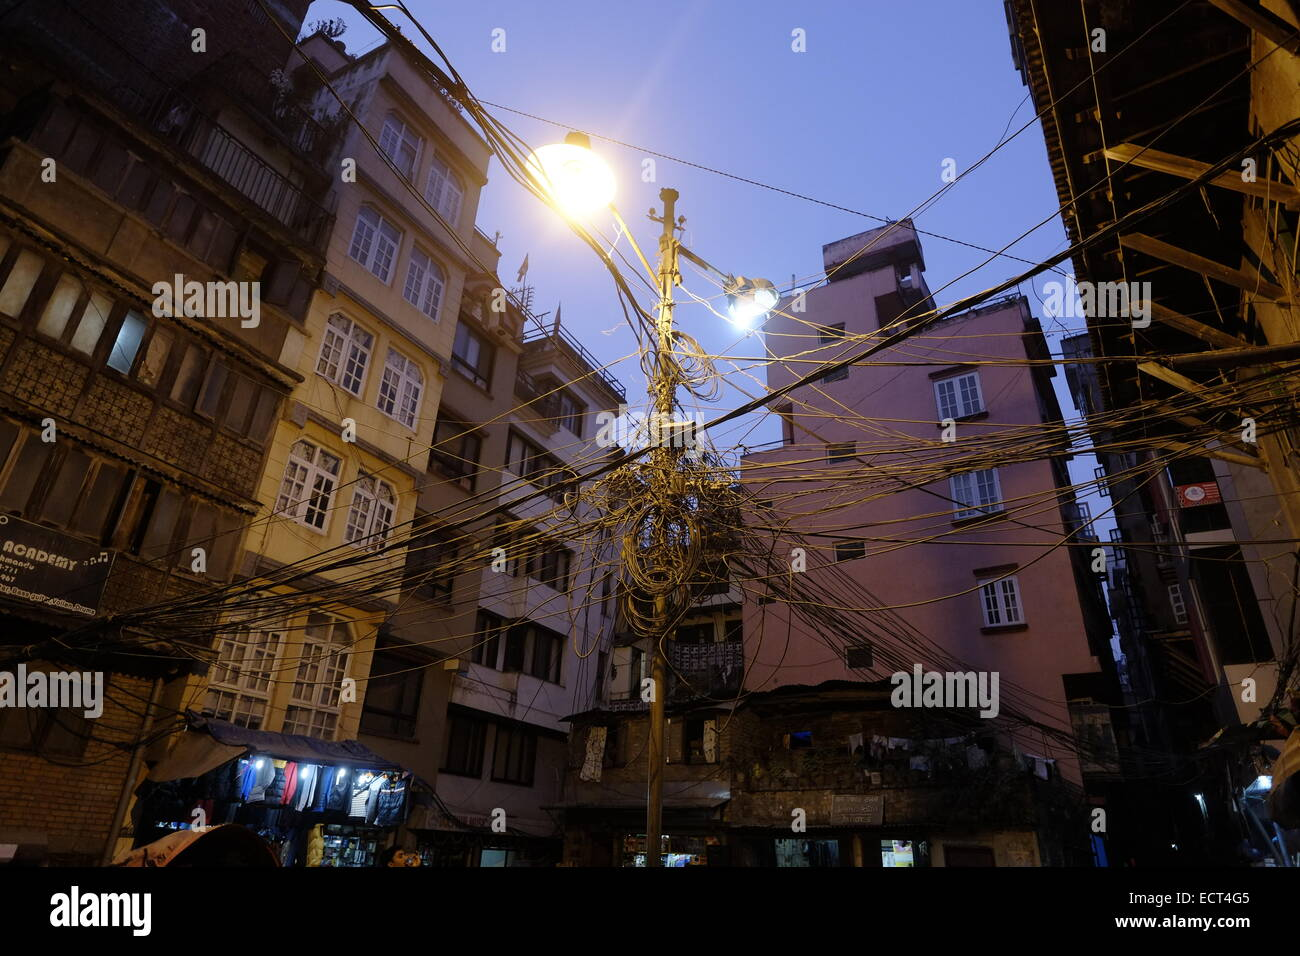 Electric Wires Street Downtown Great Installation Of Wiring Diagram In India Photo Kathmandu Nepal Stock 76747781 Alamy Rh Com Old Electrical